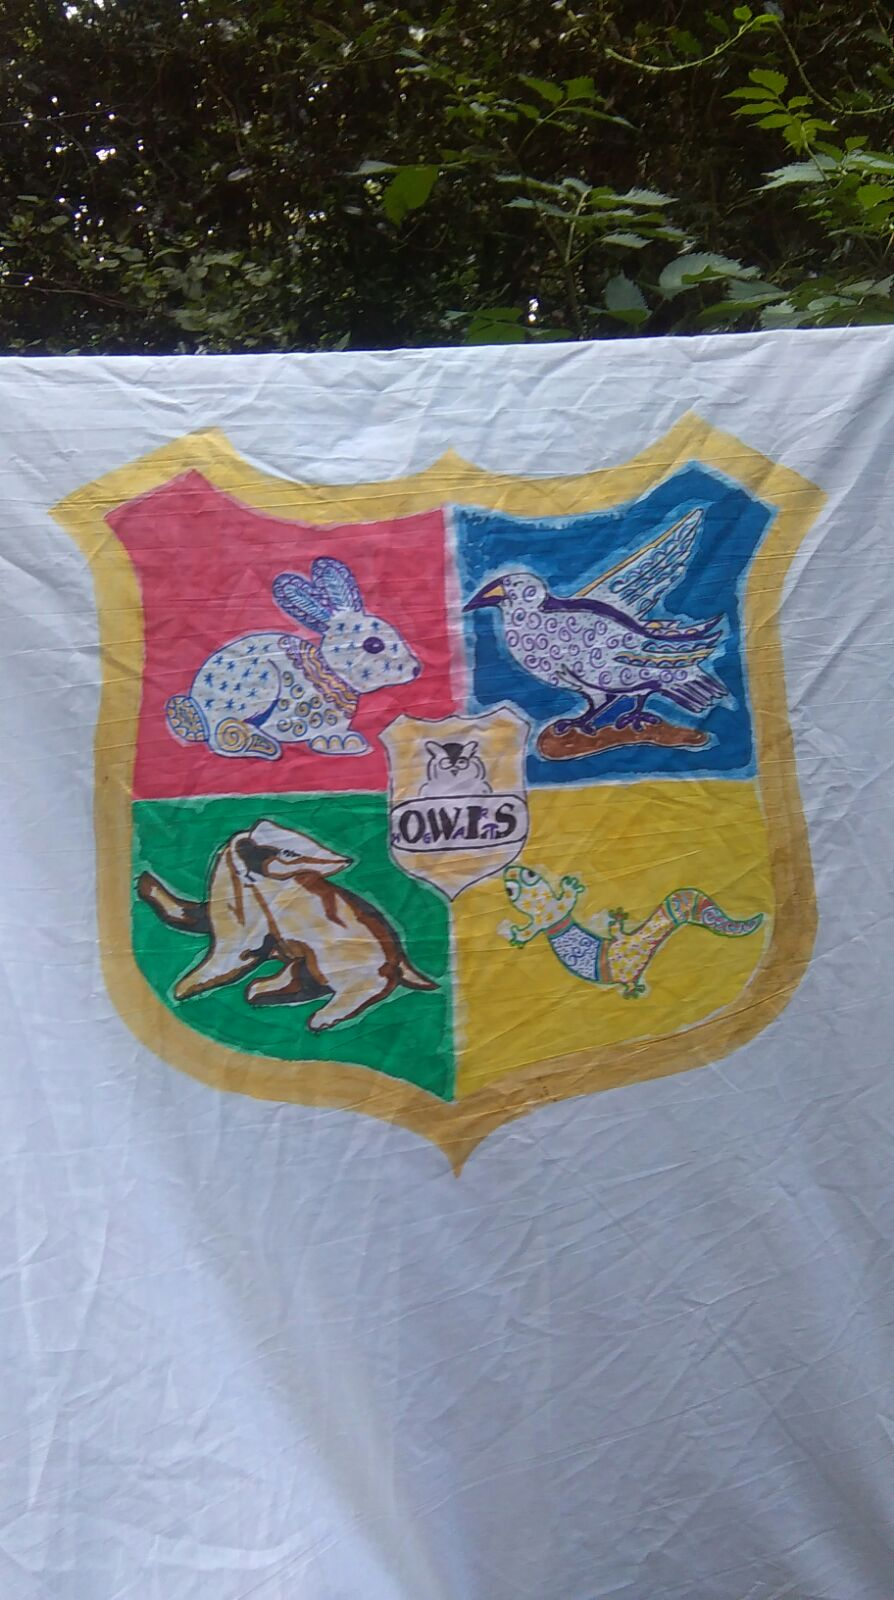 OWLS School of Wizardry Banner